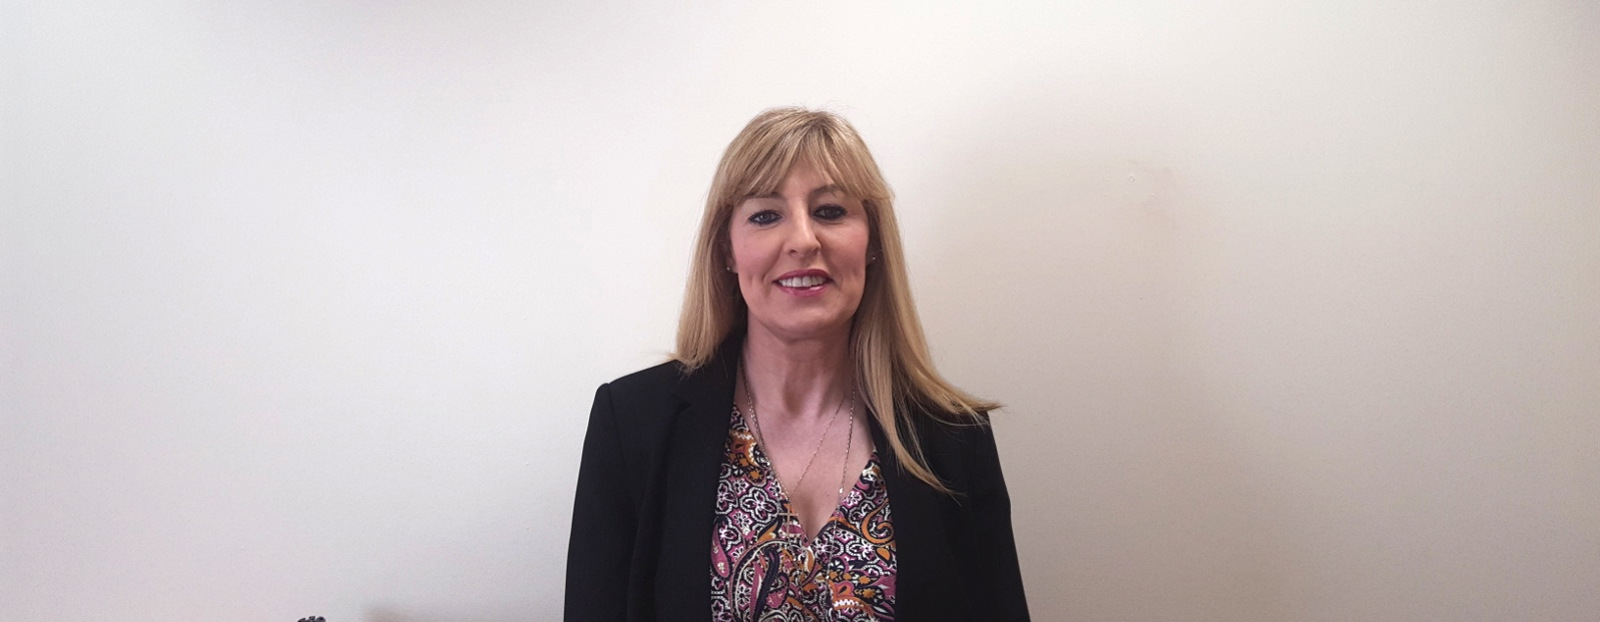 Welcome to our New Office Manager - Debbie Mooney!